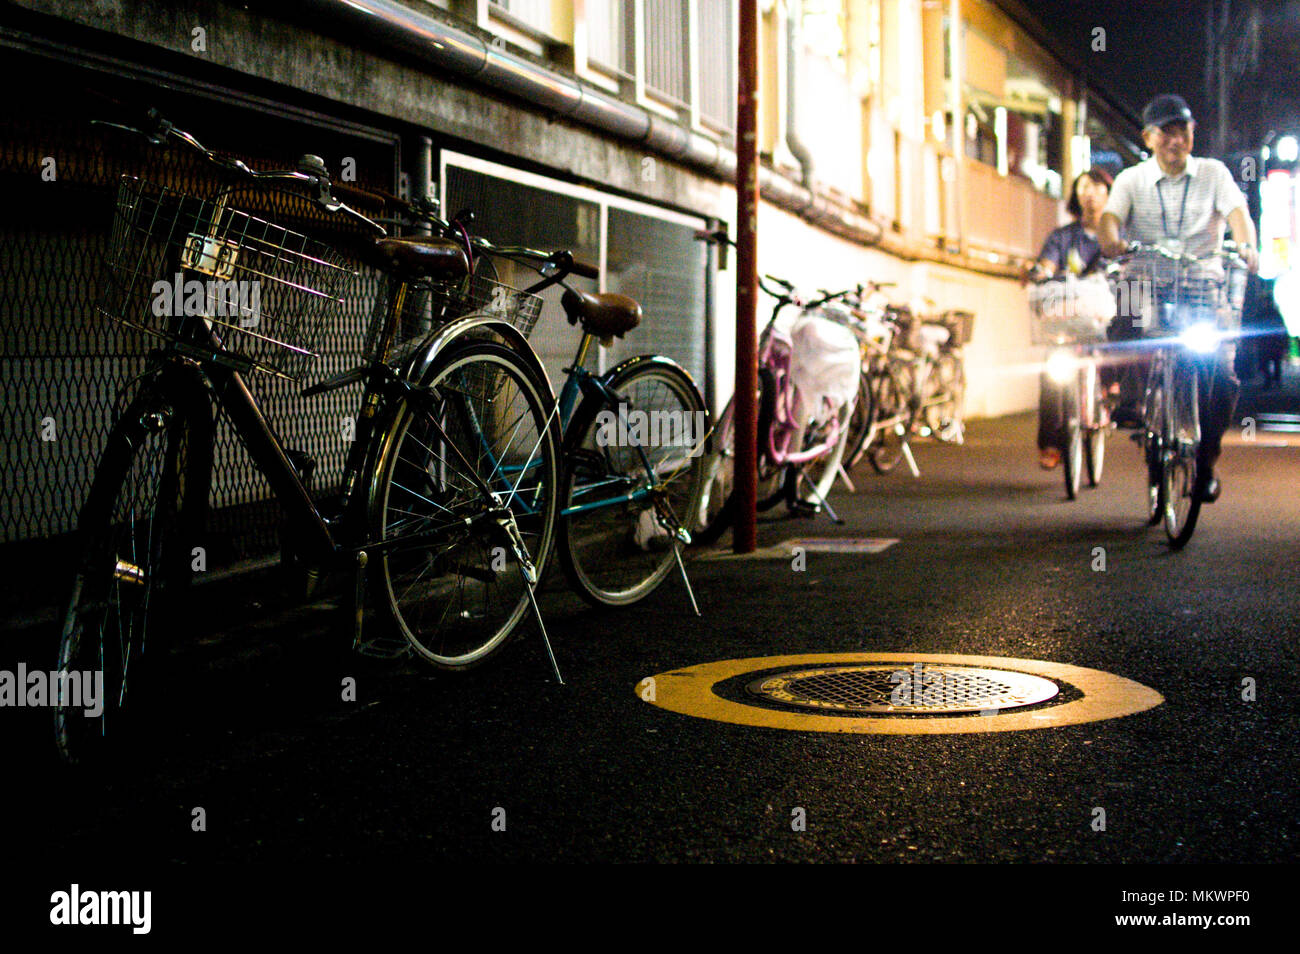 Bicycles in Tokyo, Japan. Tokyo has many bicycles since the land is pretty flat. Many Japanese people ride bicycles as a transport. - Stock Image